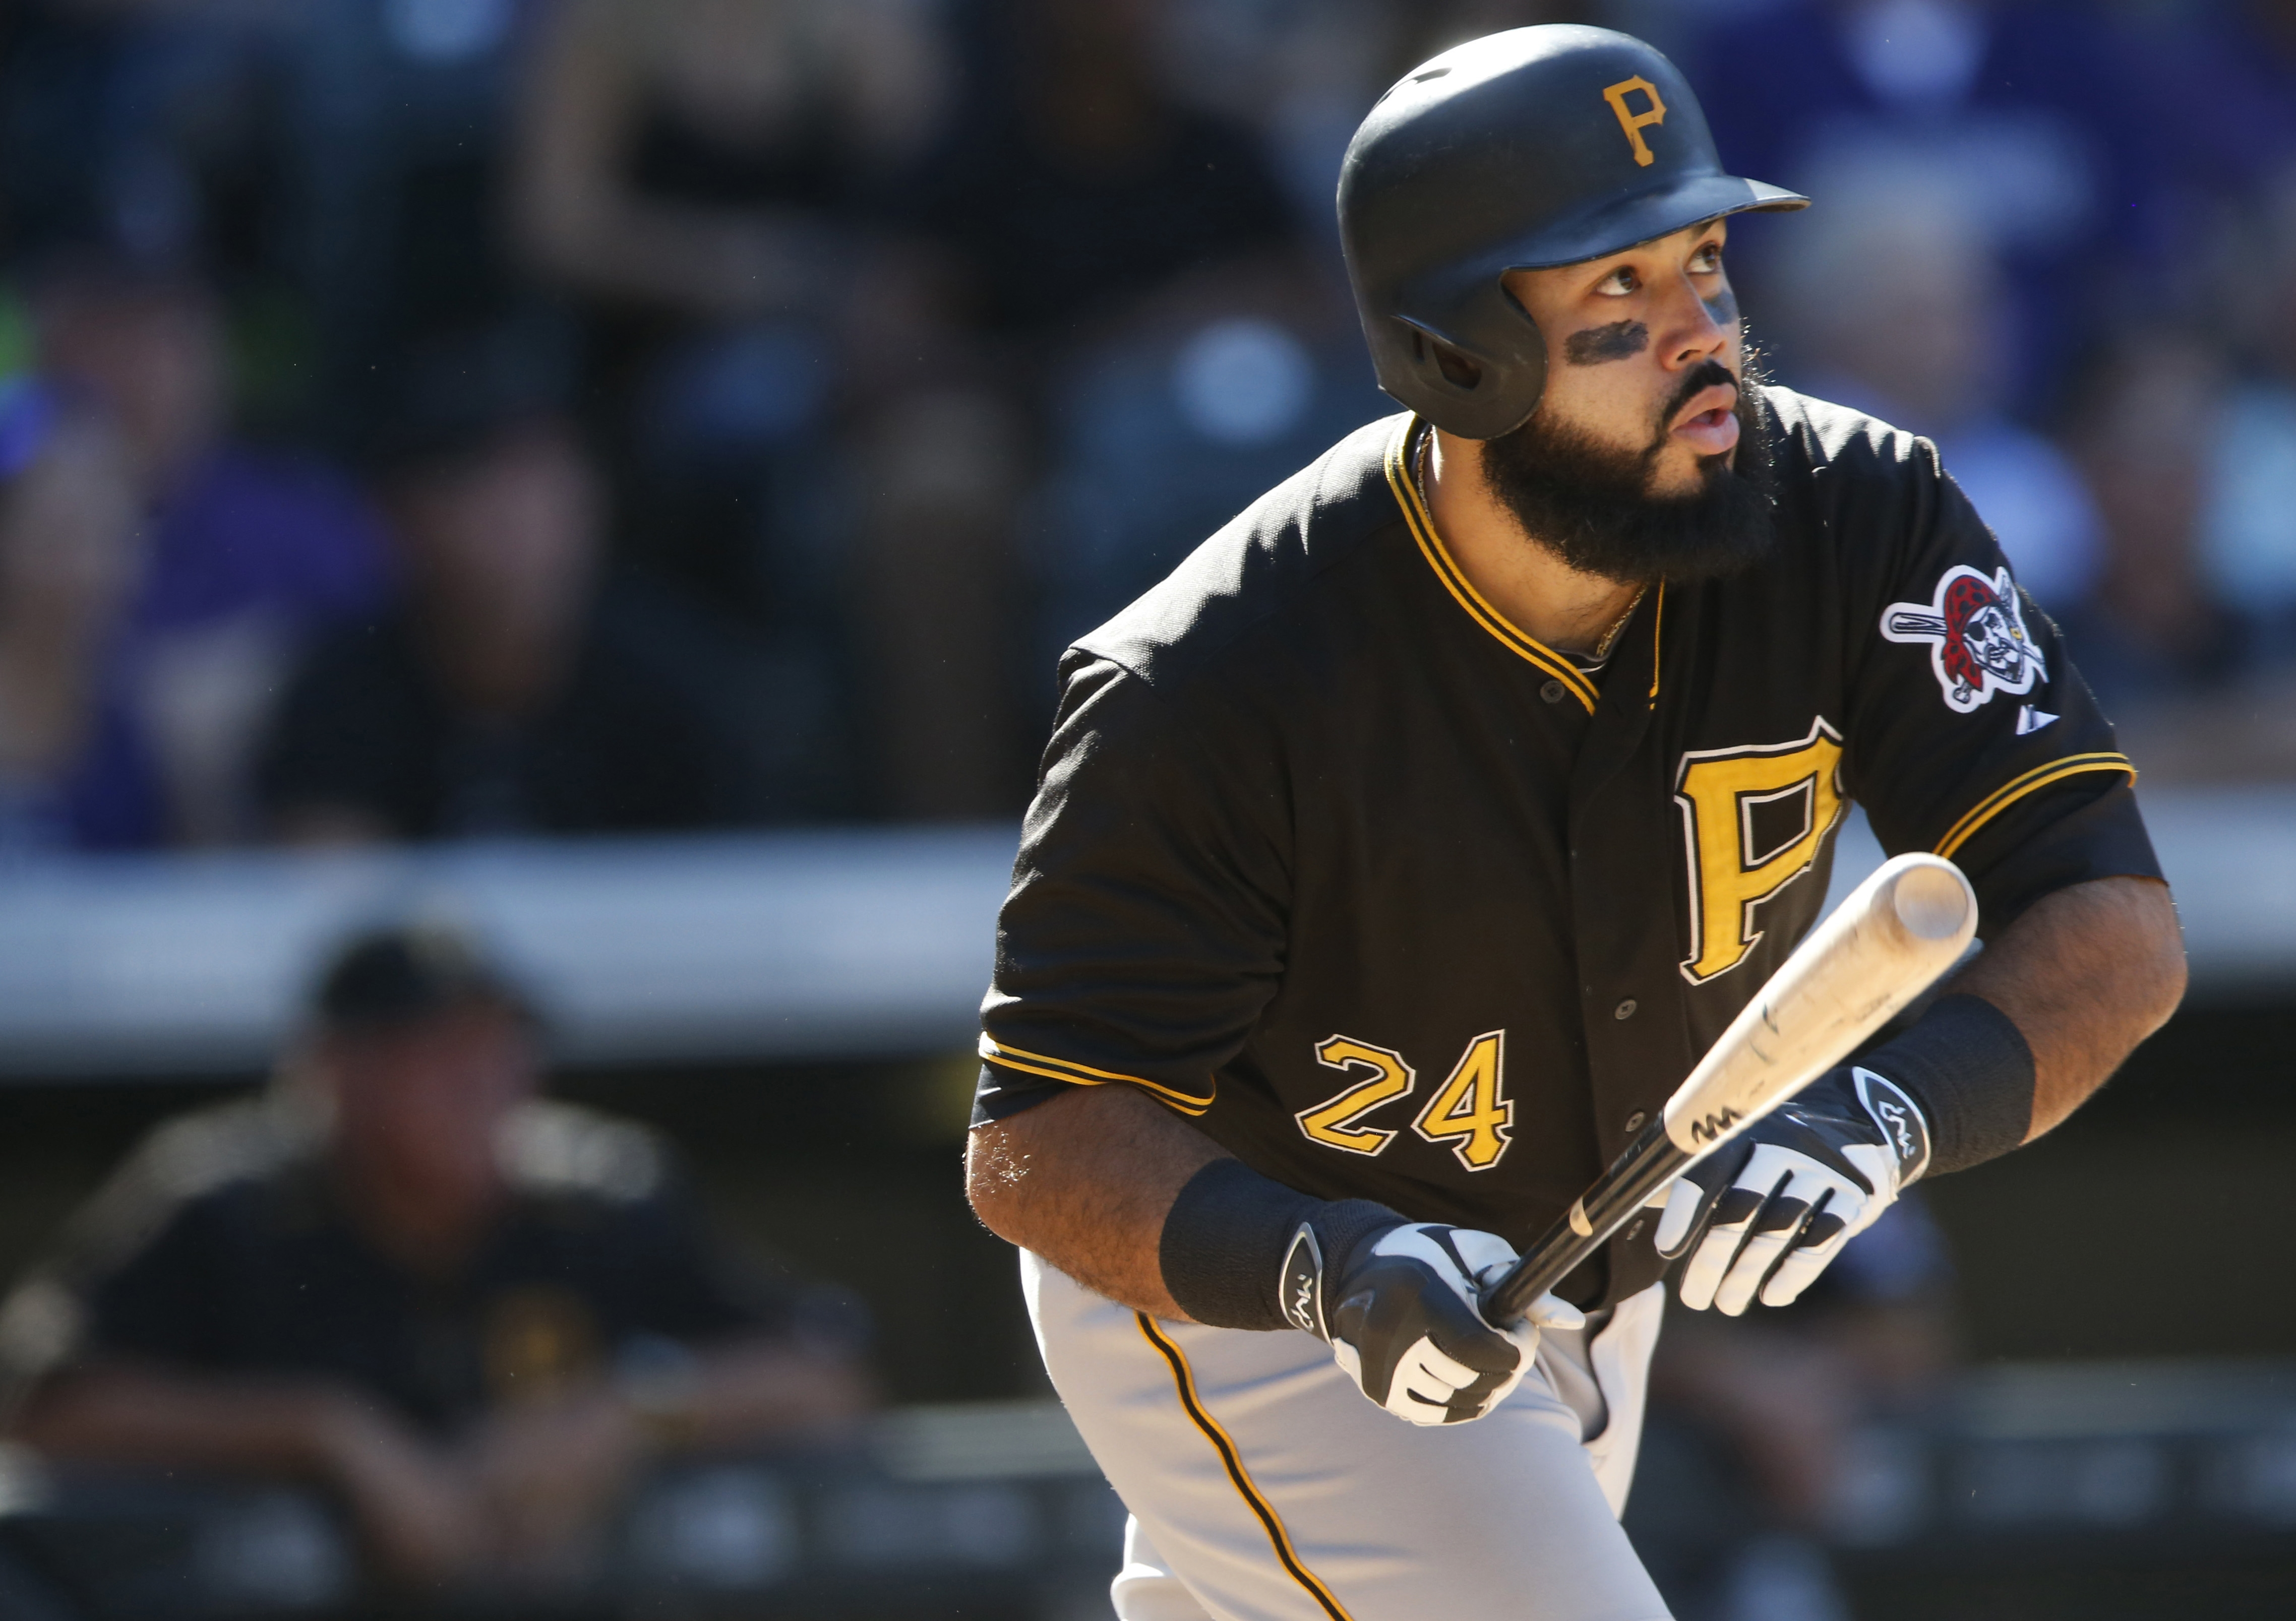 FILE - In this Sept. 24, 2015, file photo, Pittsburgh Pirates' Pedro Alvarez watches his three-run home run off Colorado Rockies relief pitcher Jairo Diaz during the eighth inning of a baseball game in Denver. The club declined to offer a 2016 contract to